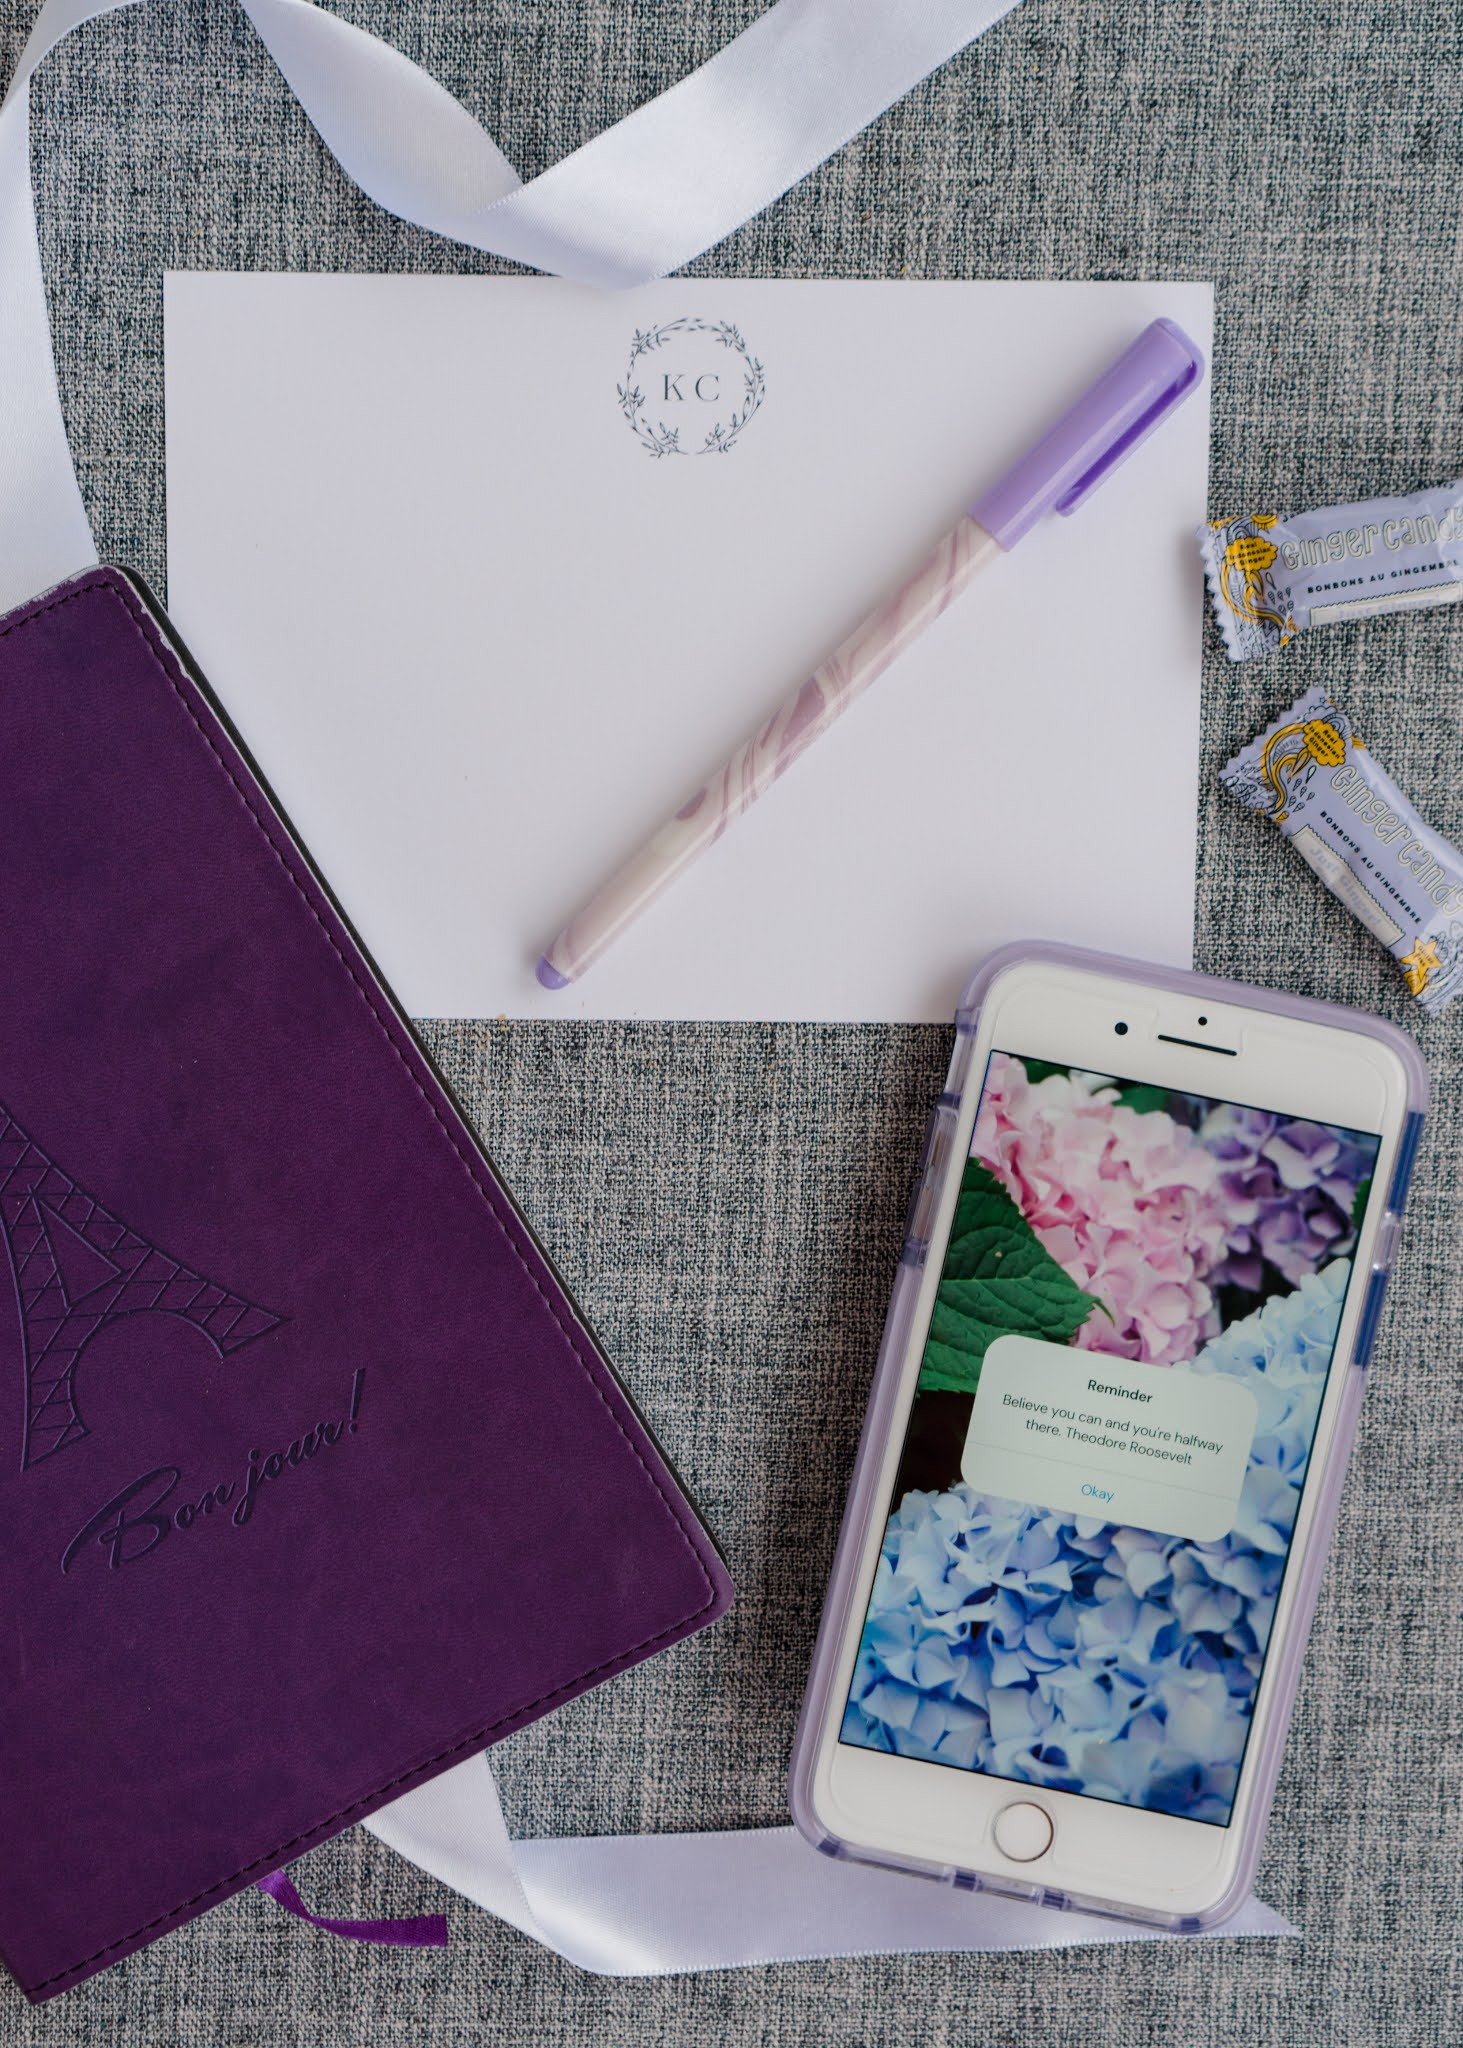 Tips to creating consistently beautiful Instagram Stories